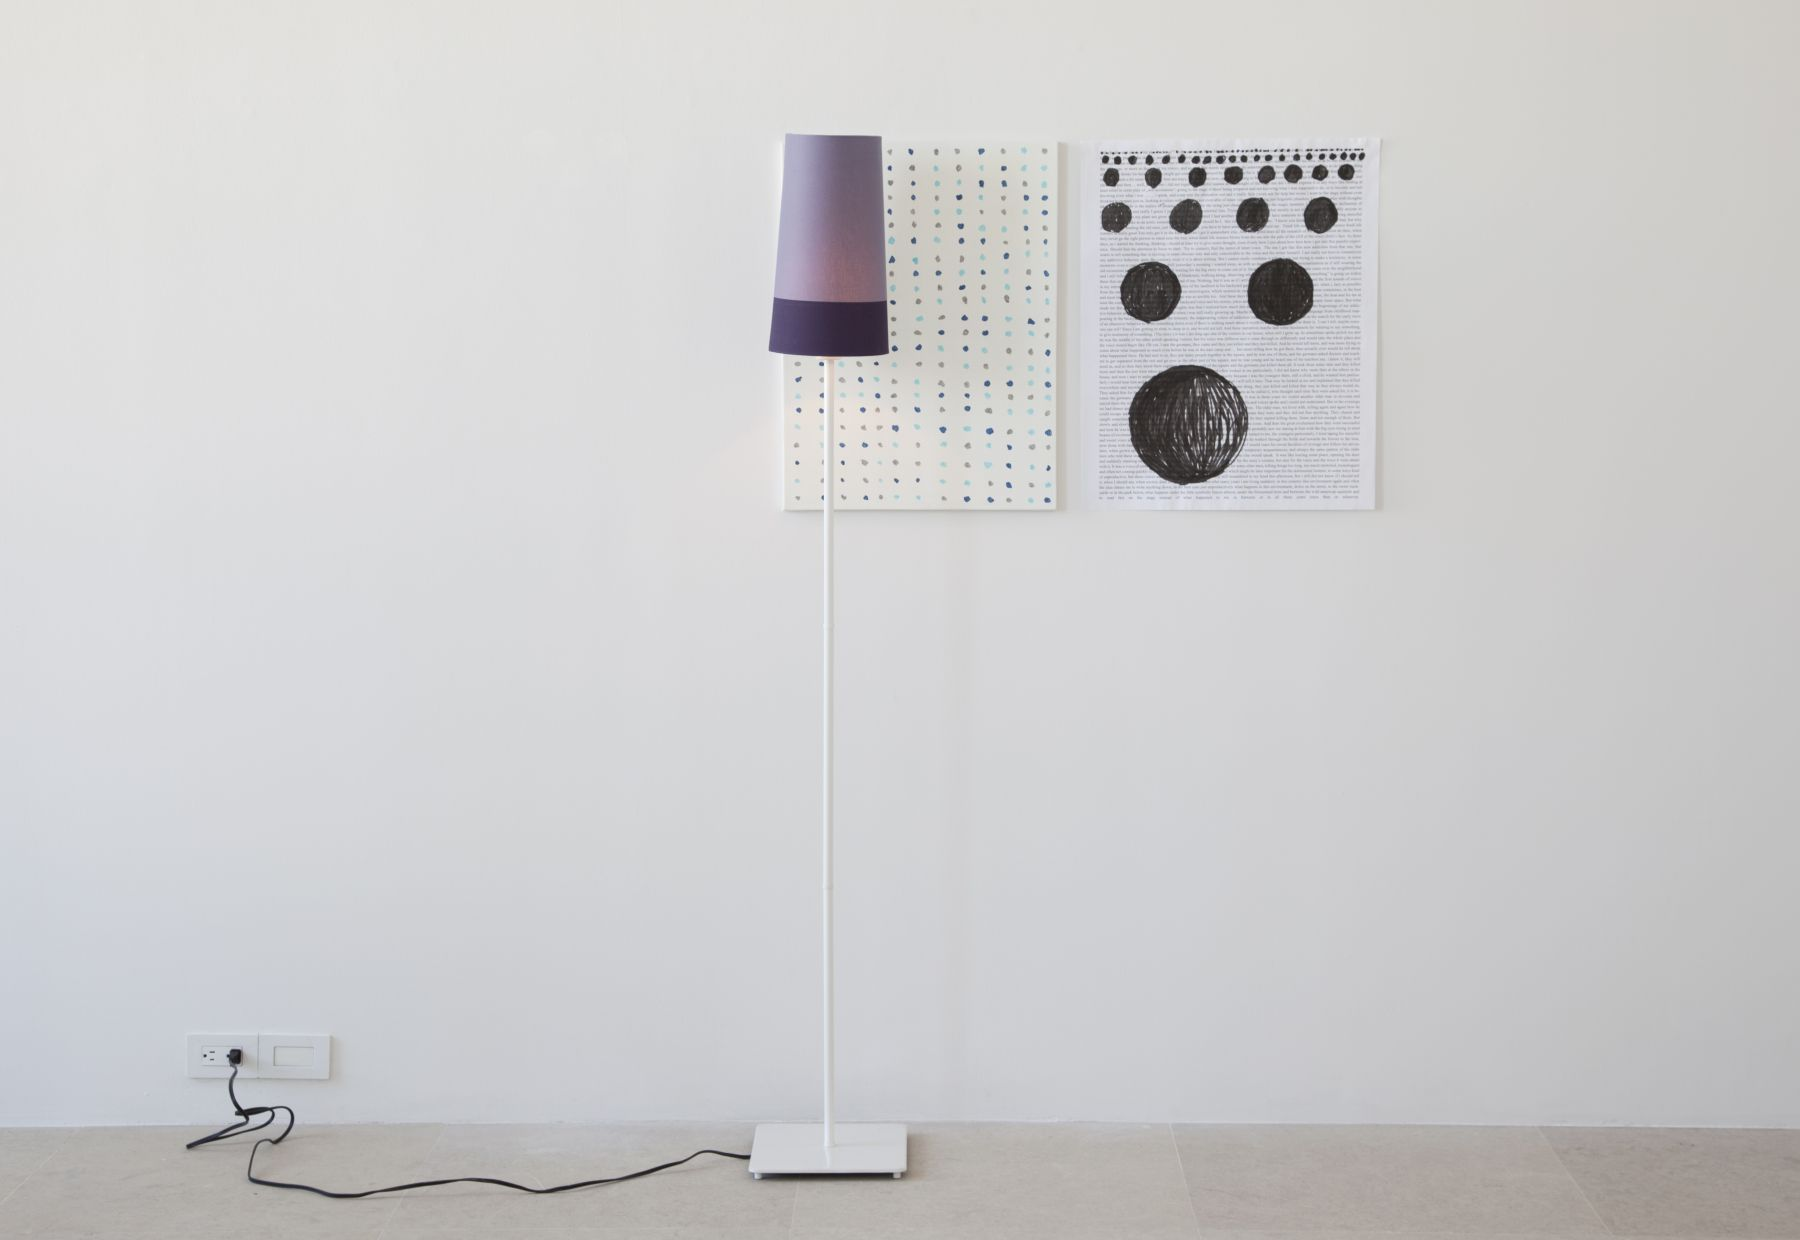 Josef Strau  Title Forthcoming, 2010  Mixed media installation with floor lamp, painting and poster  Overall dimensions variable